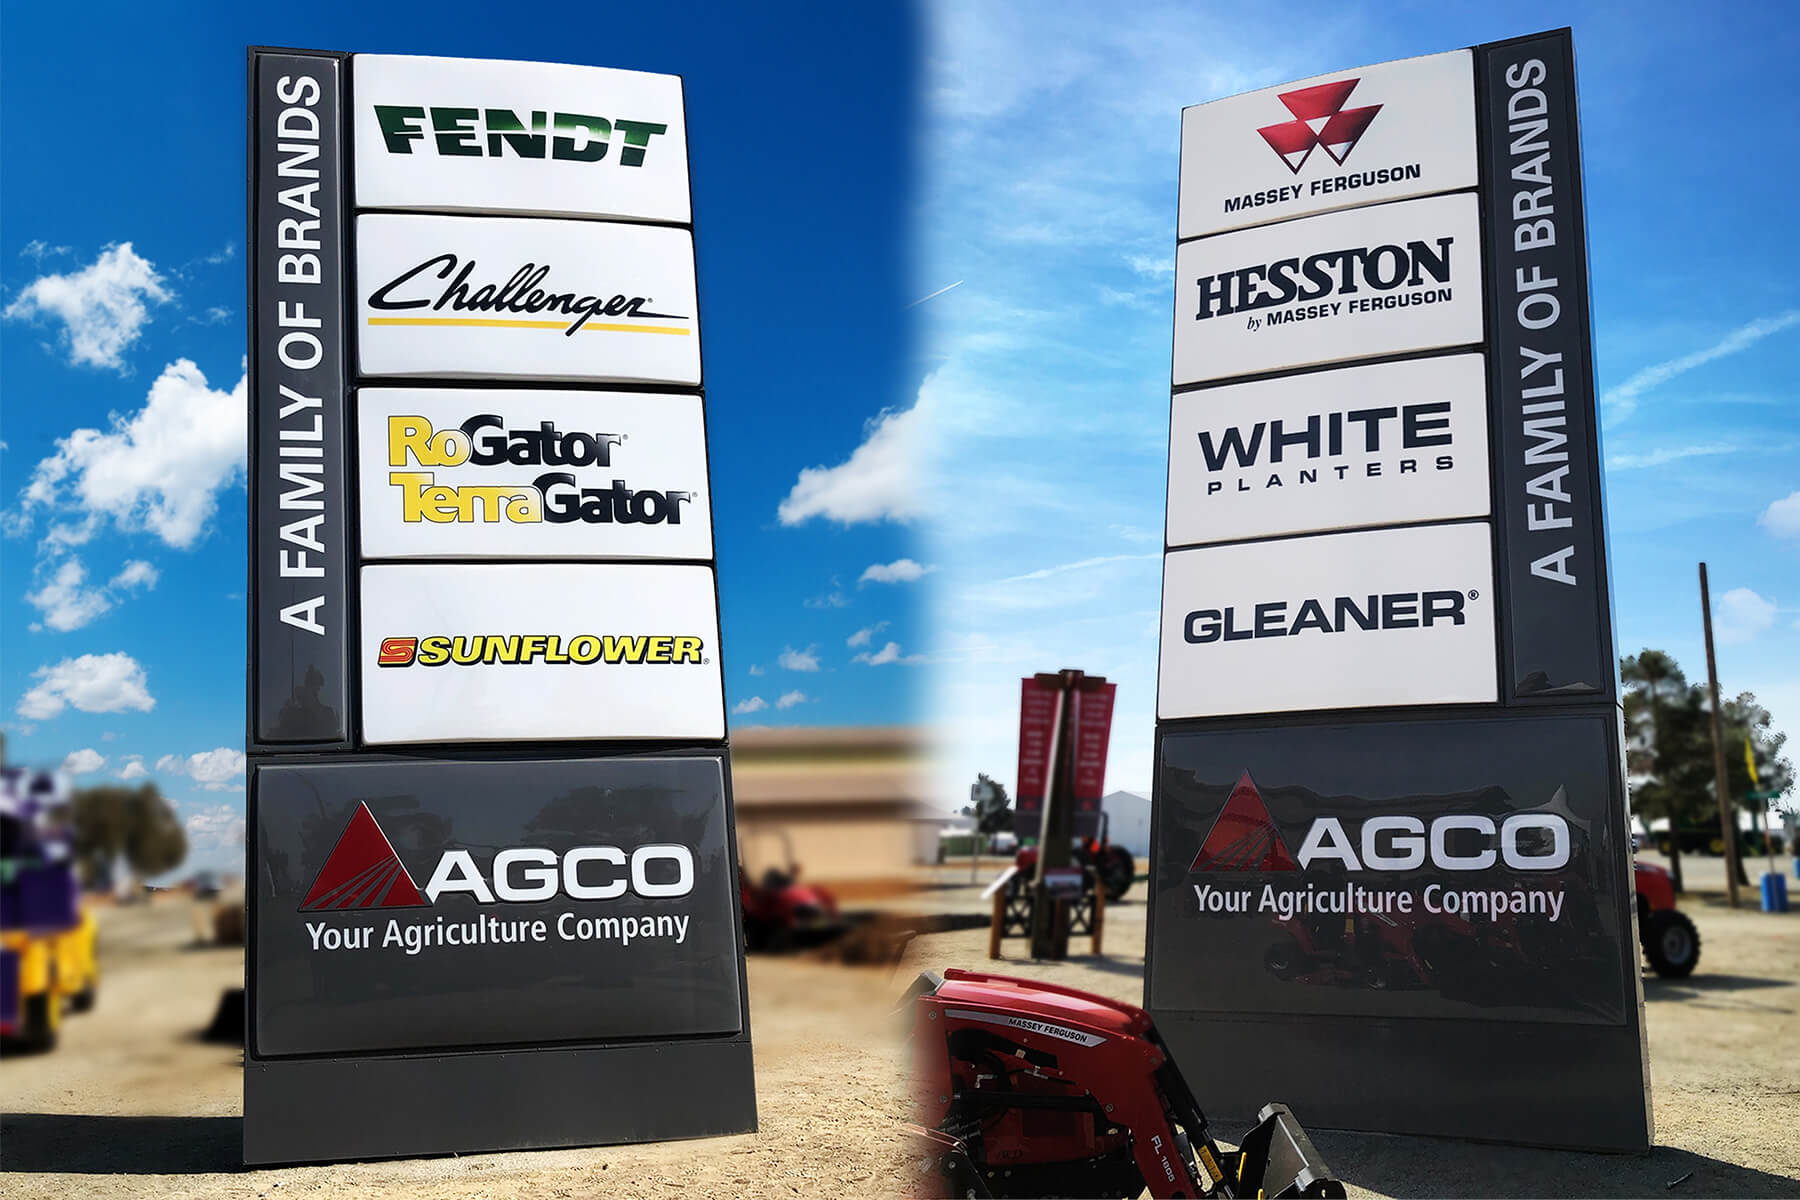 One of many AGCO totem signs that successfully displays multiple brands on two sides.